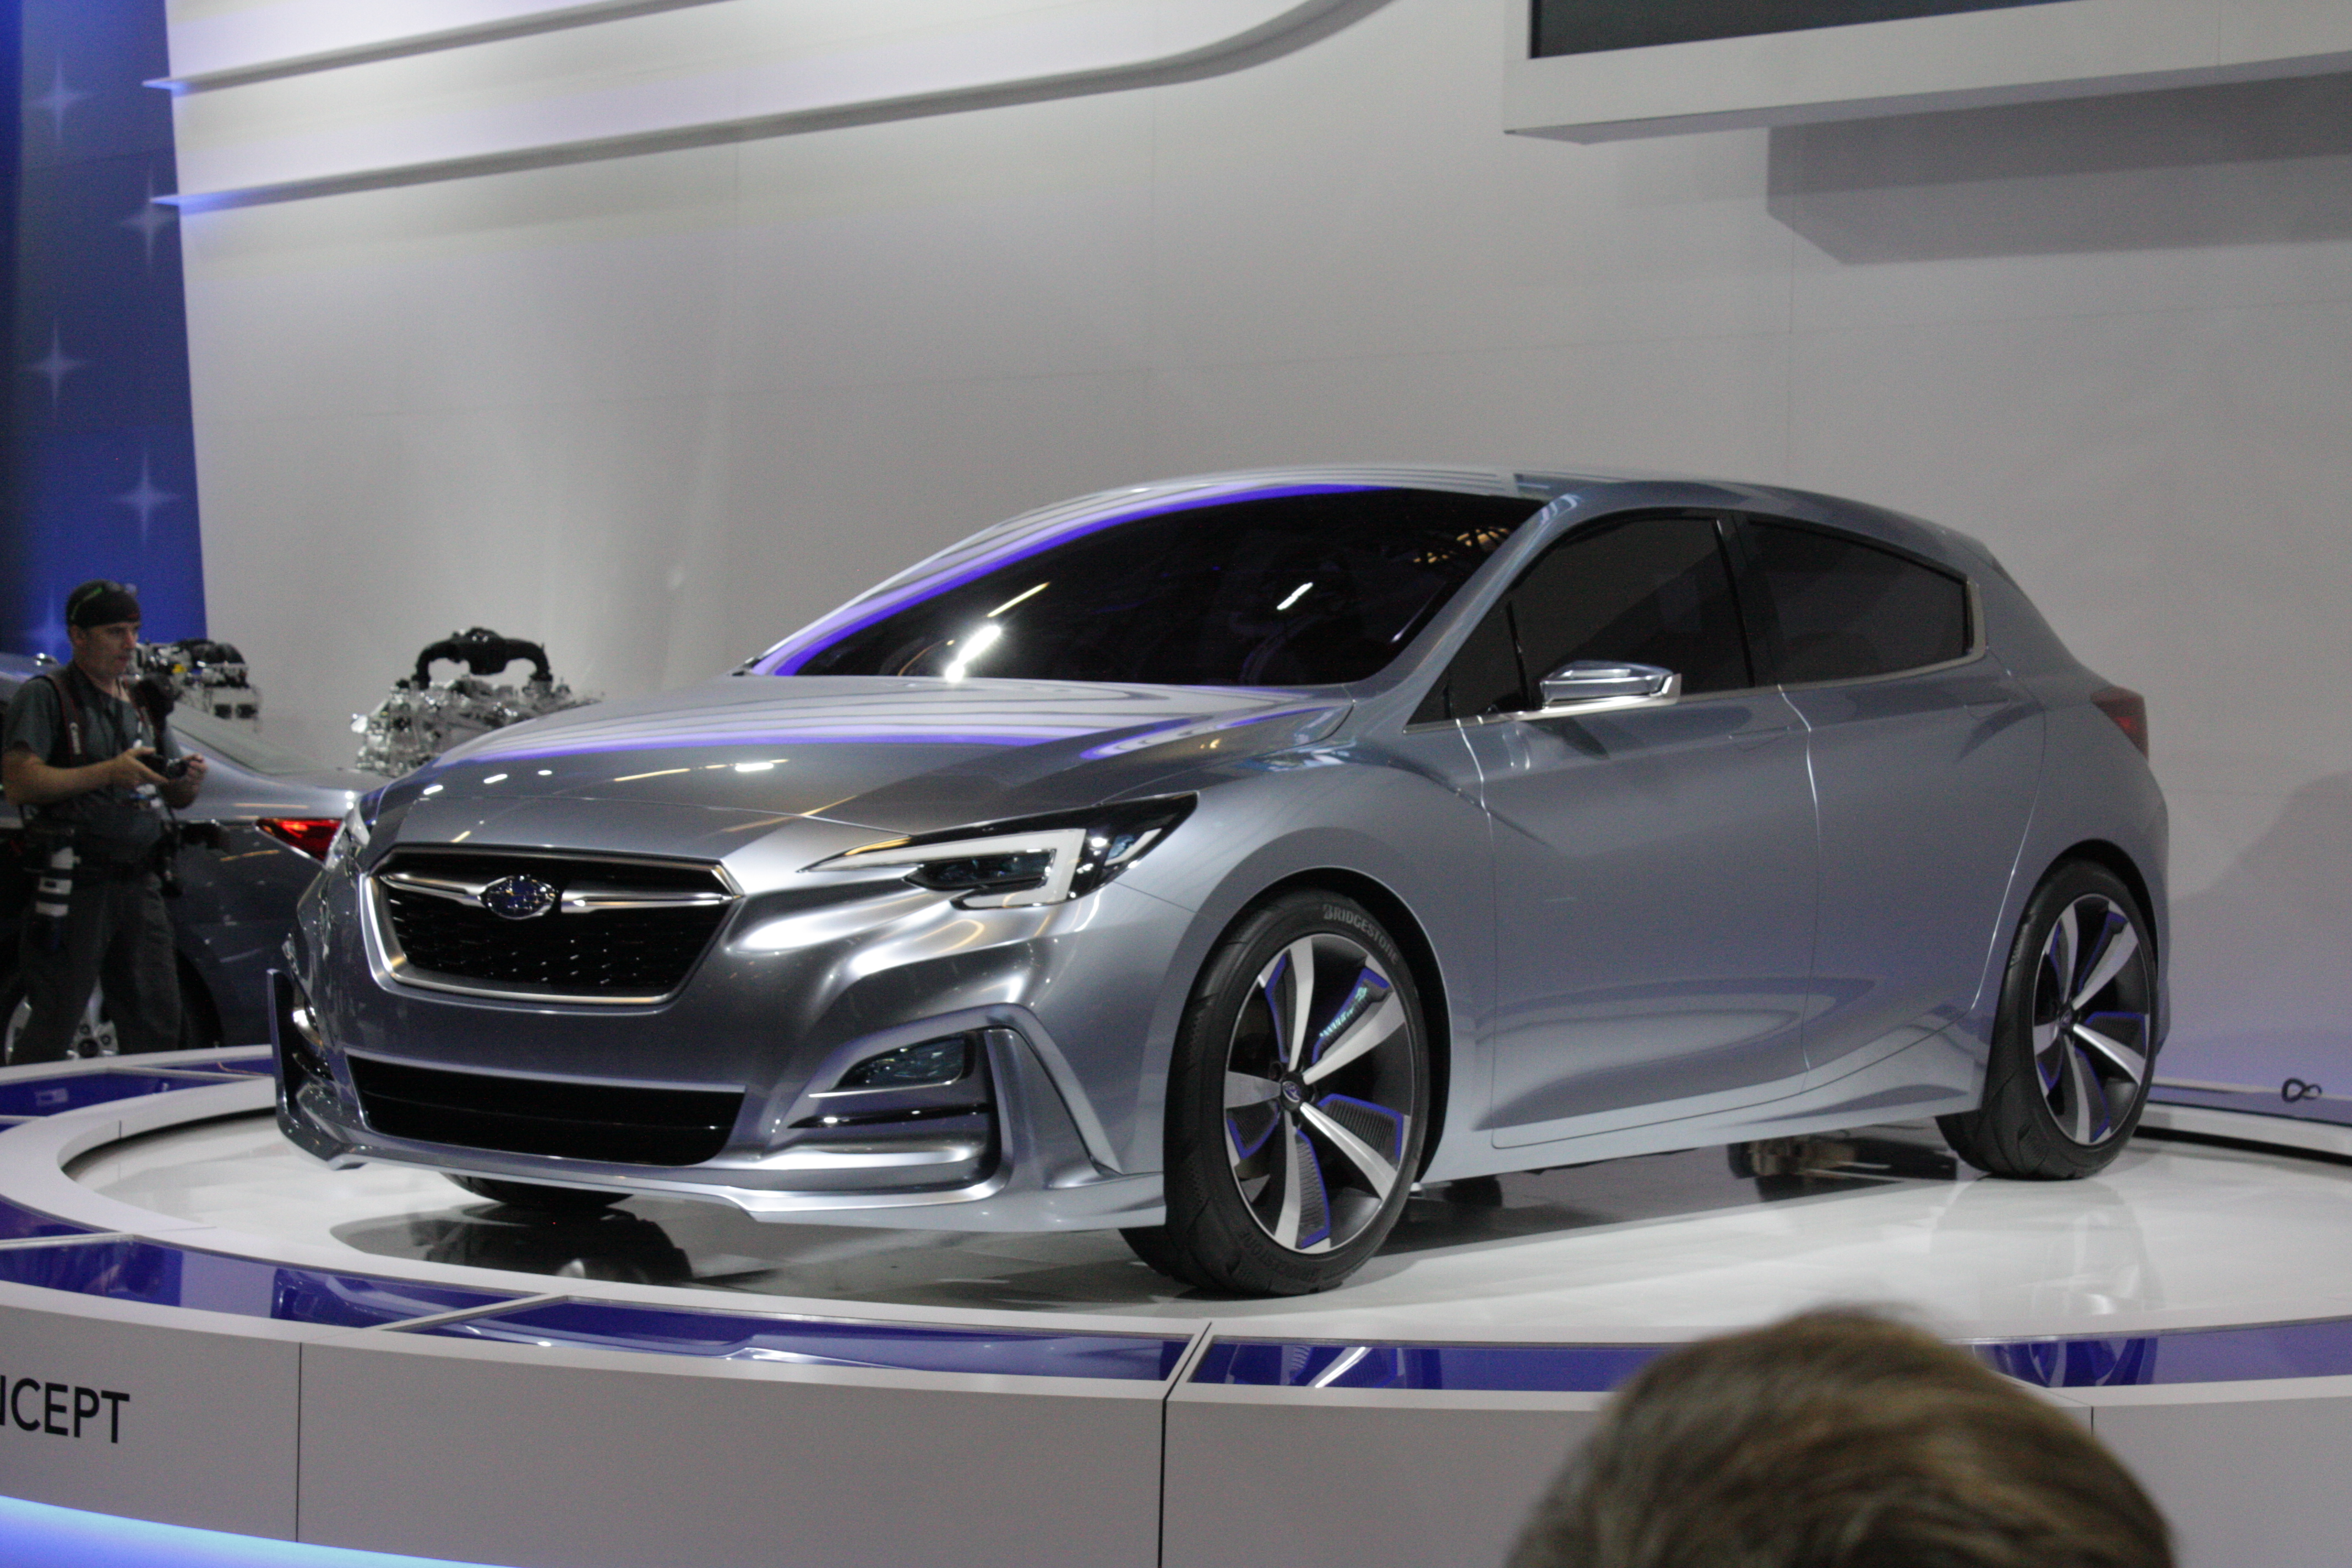 Subaru staged the North America reveal of its Impreza hatchback concept, a sharp-looking car that previews what we can expect the next generation of this compact car to look like.